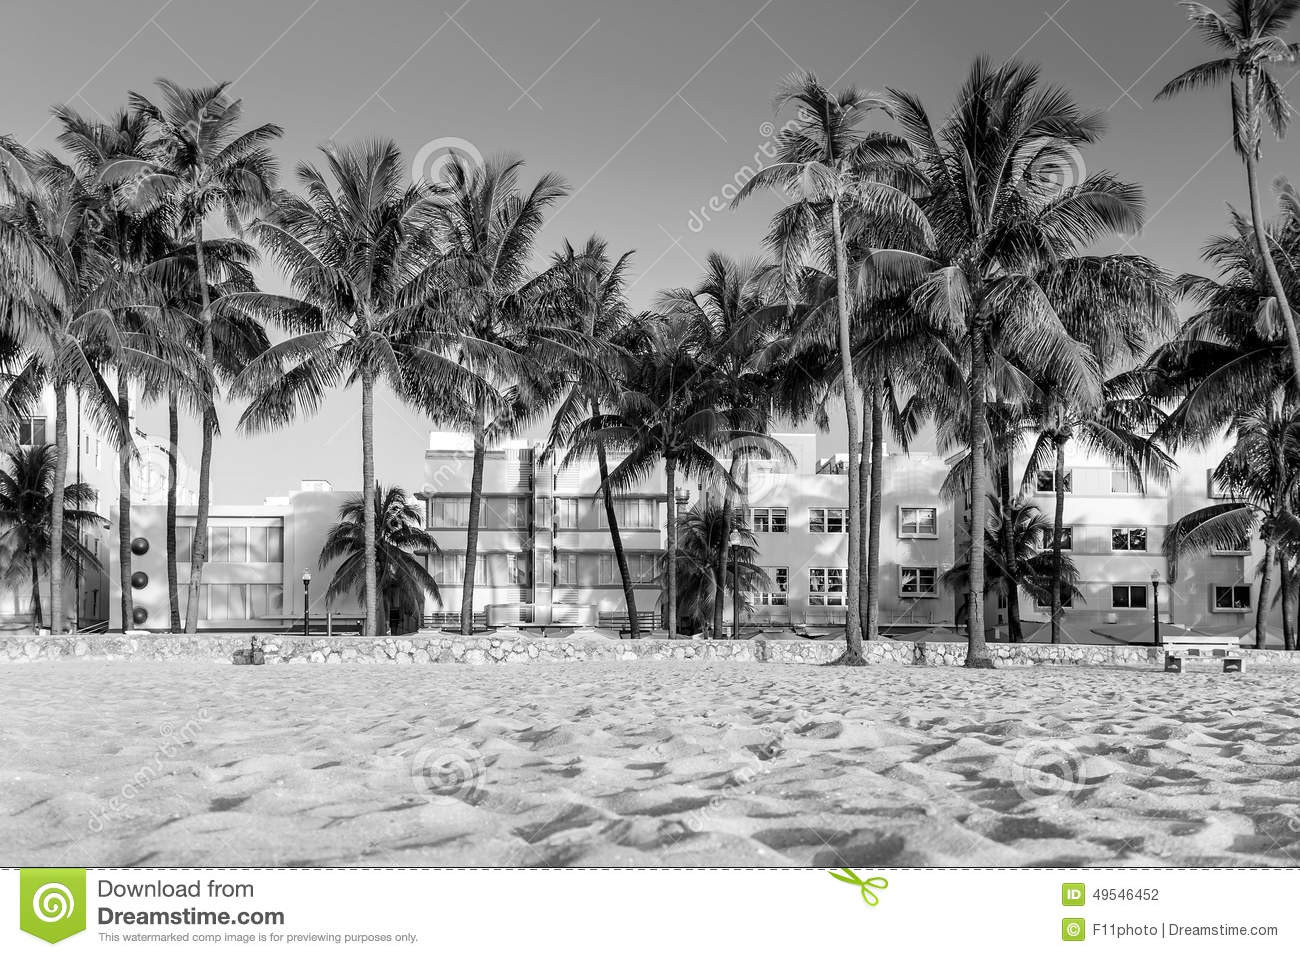 Miami Beach, Florida Hotels And Restaurants At Twilight On